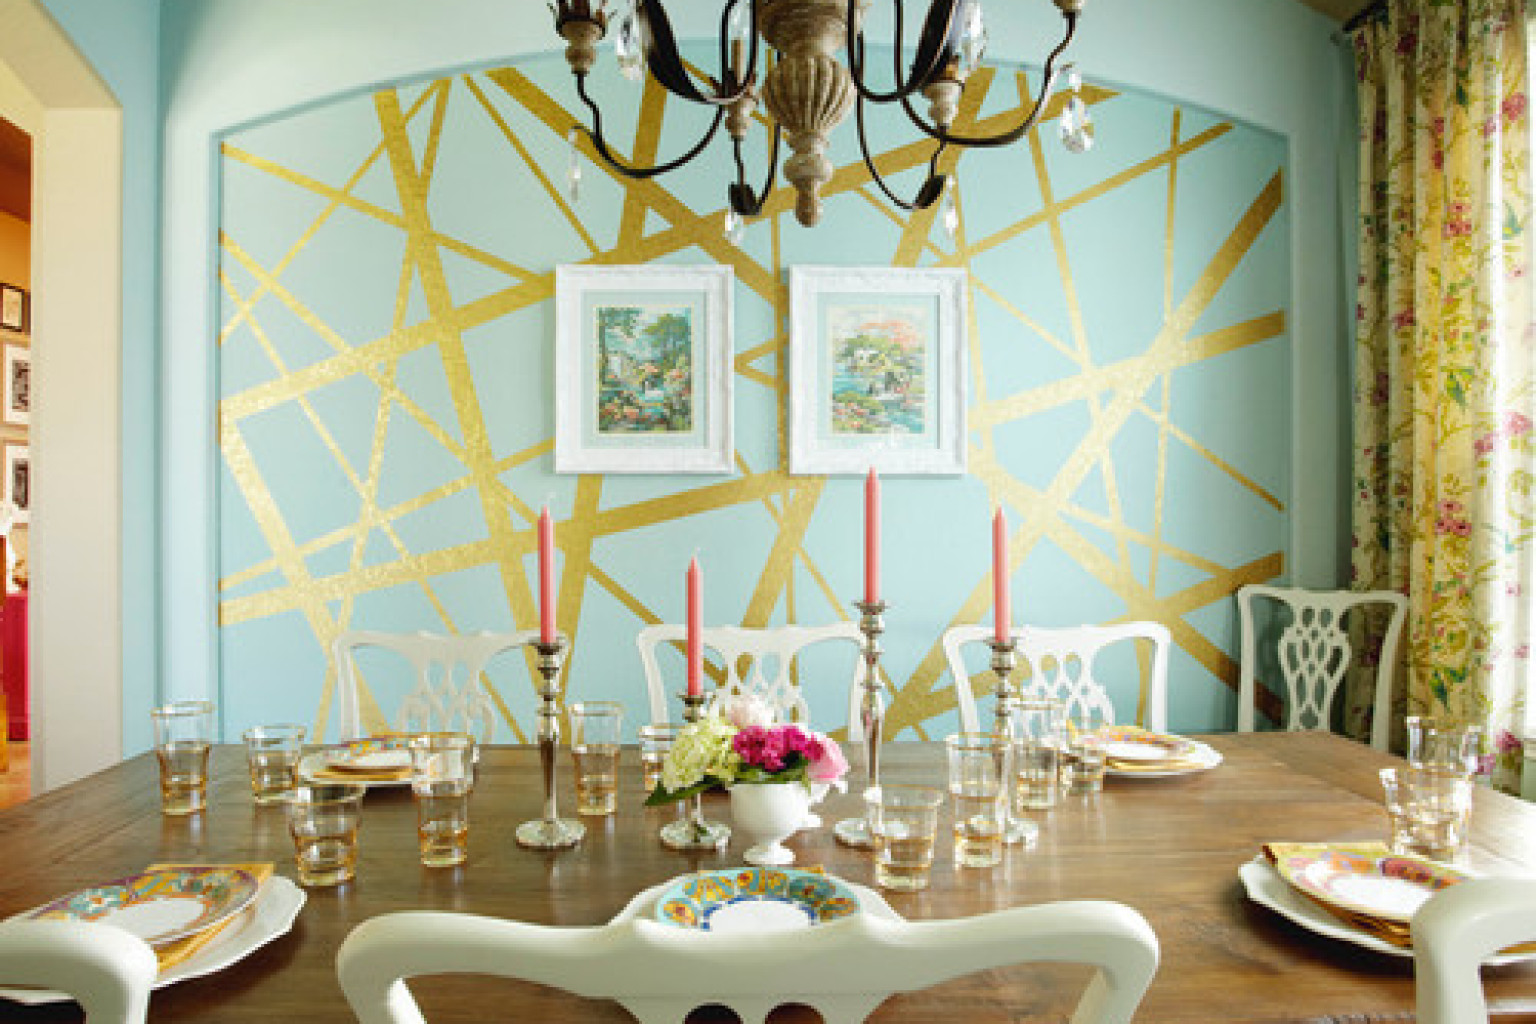 8 Incredible Interior Paint Ideas From Real Homes That Turn A Wall     8 Incredible Interior Paint Ideas From Real Homes That Turn A Wall Into A  Masterpiece  PHOTOS    HuffPost